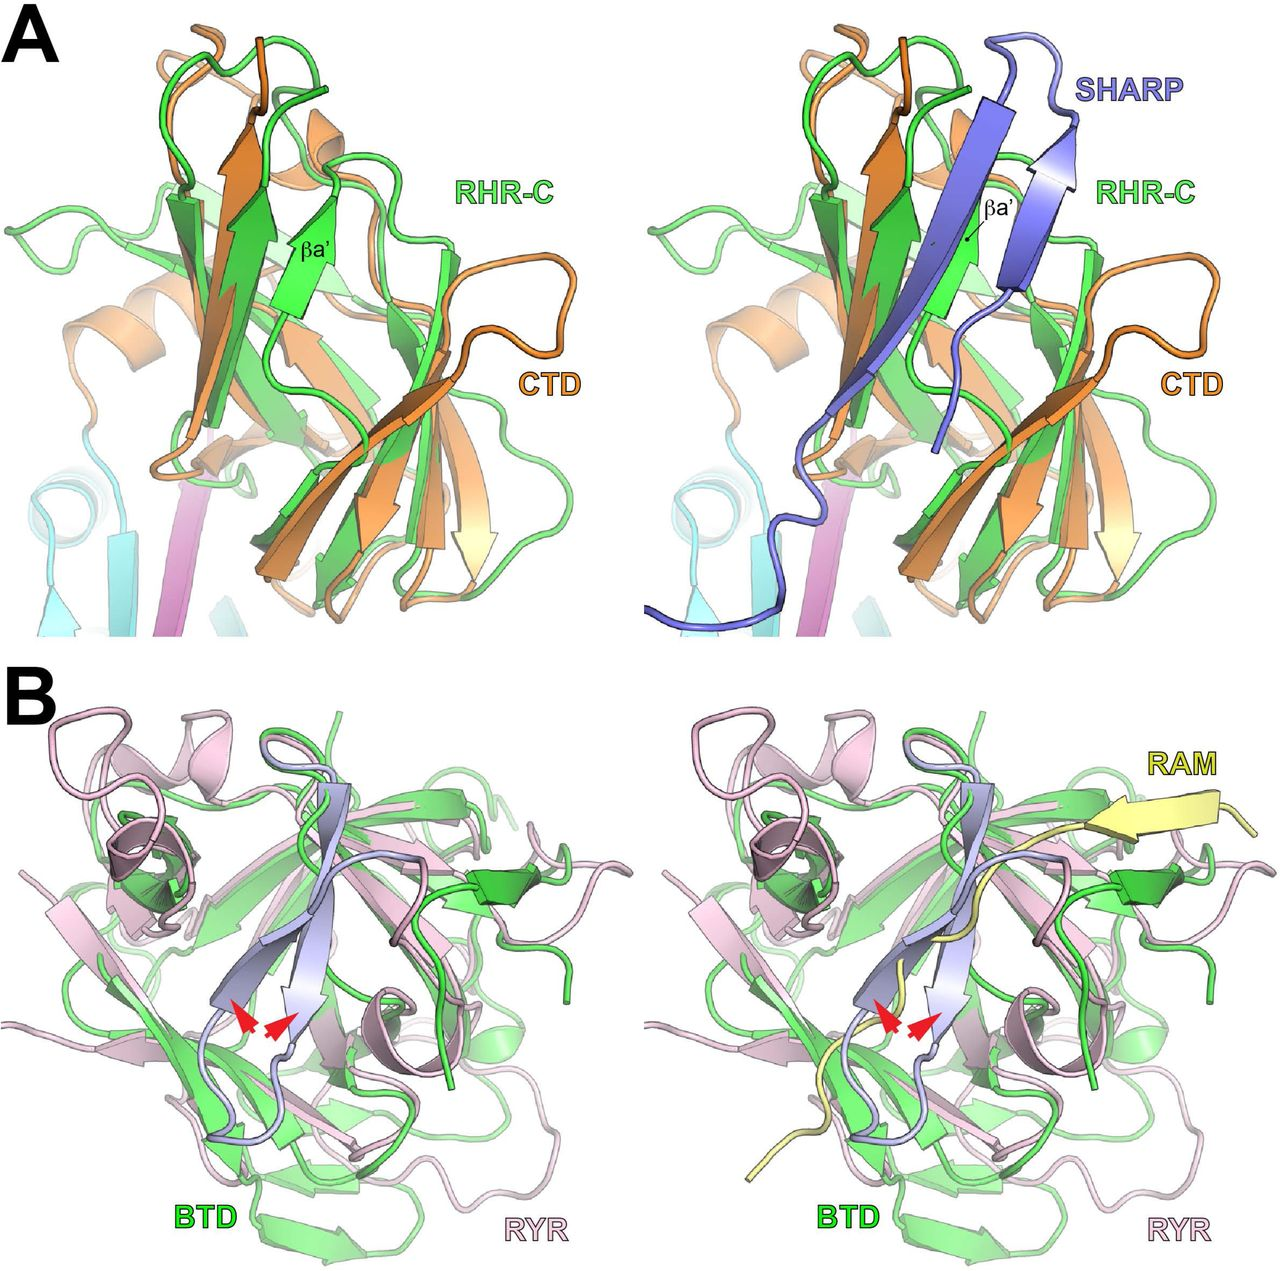 Structural and functional studies of the RBPJ-SHARP complex